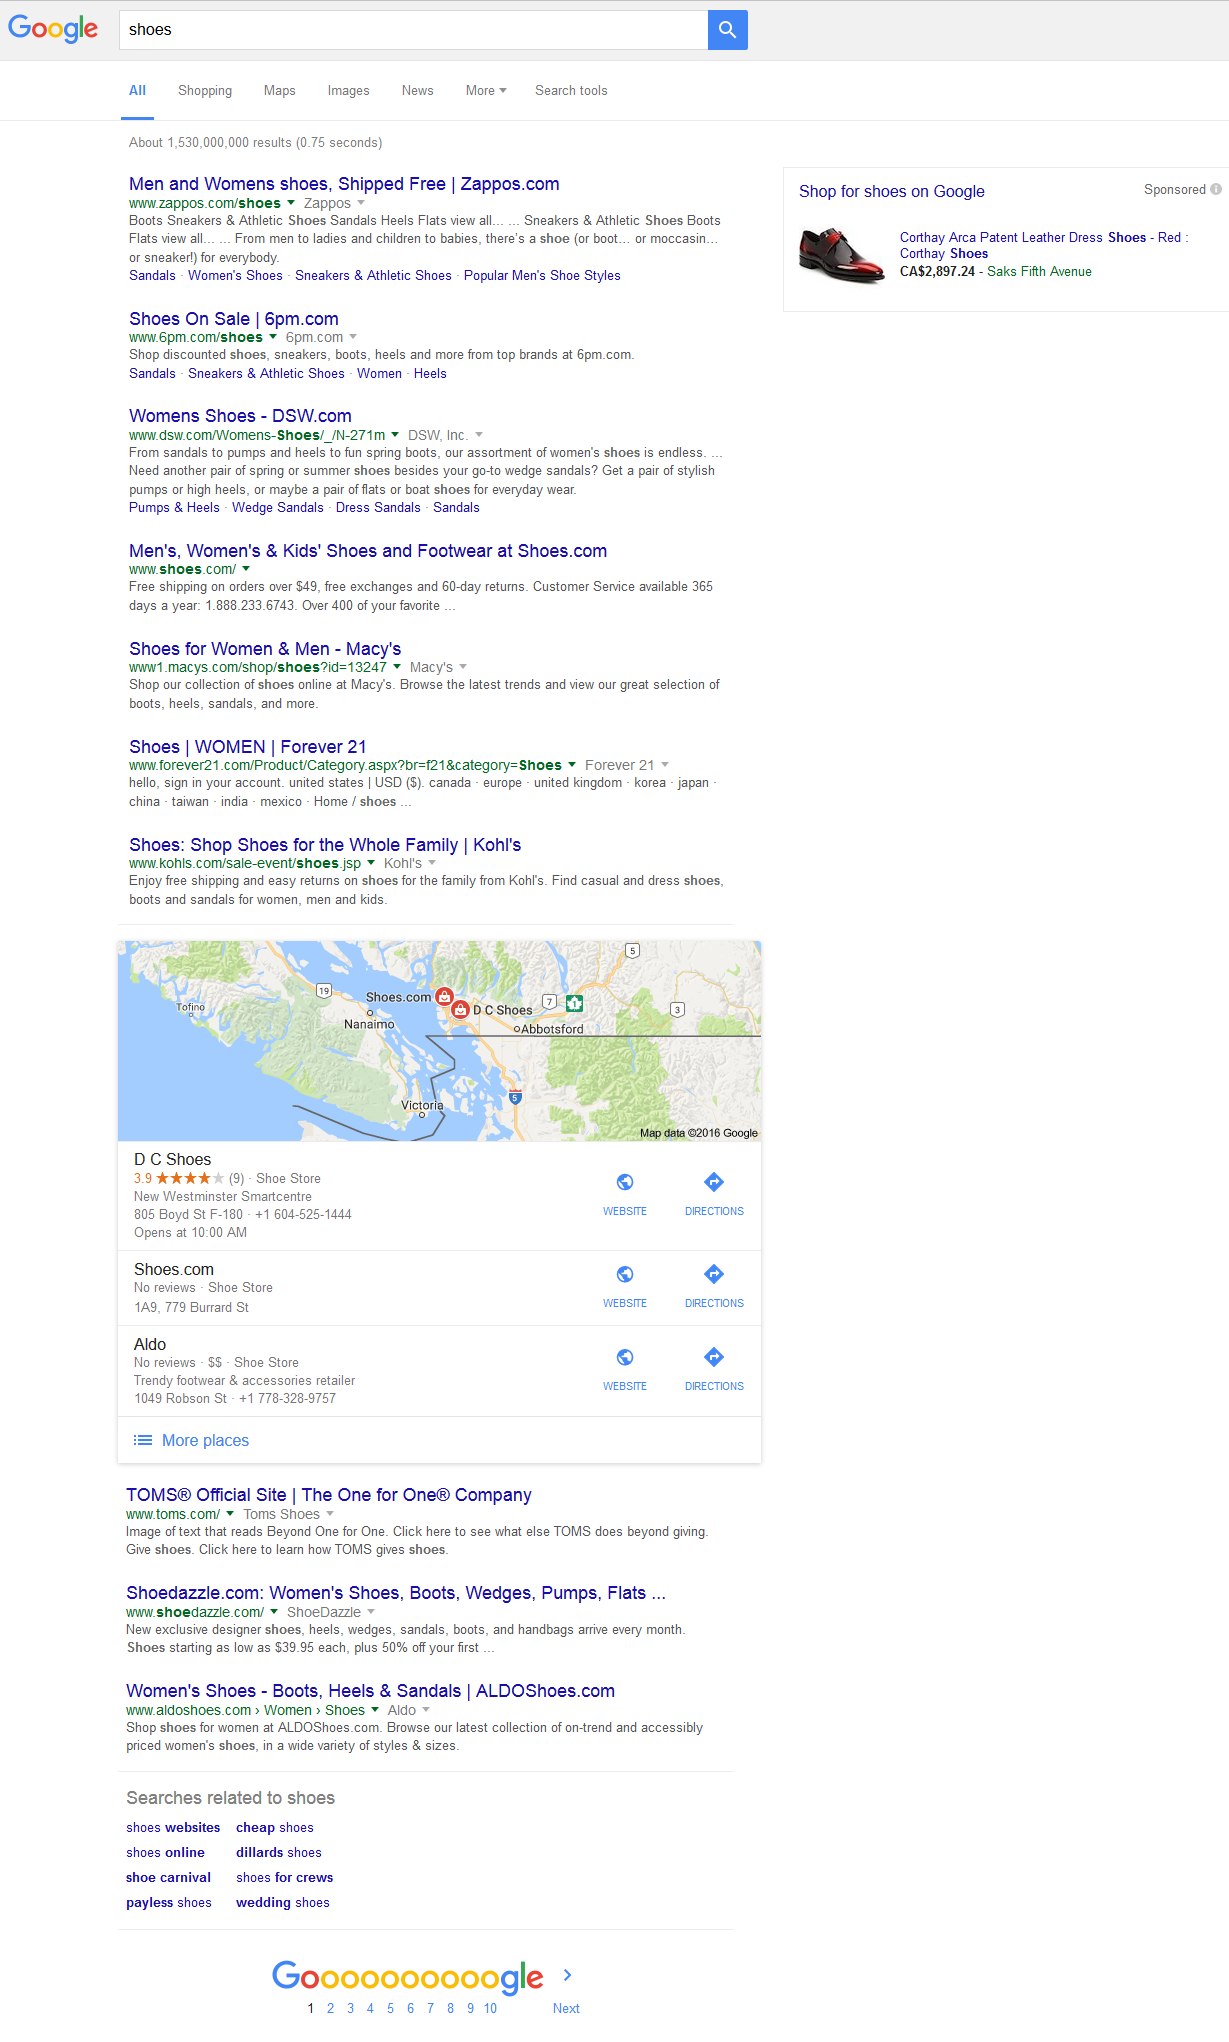 Google local 3 pack search results